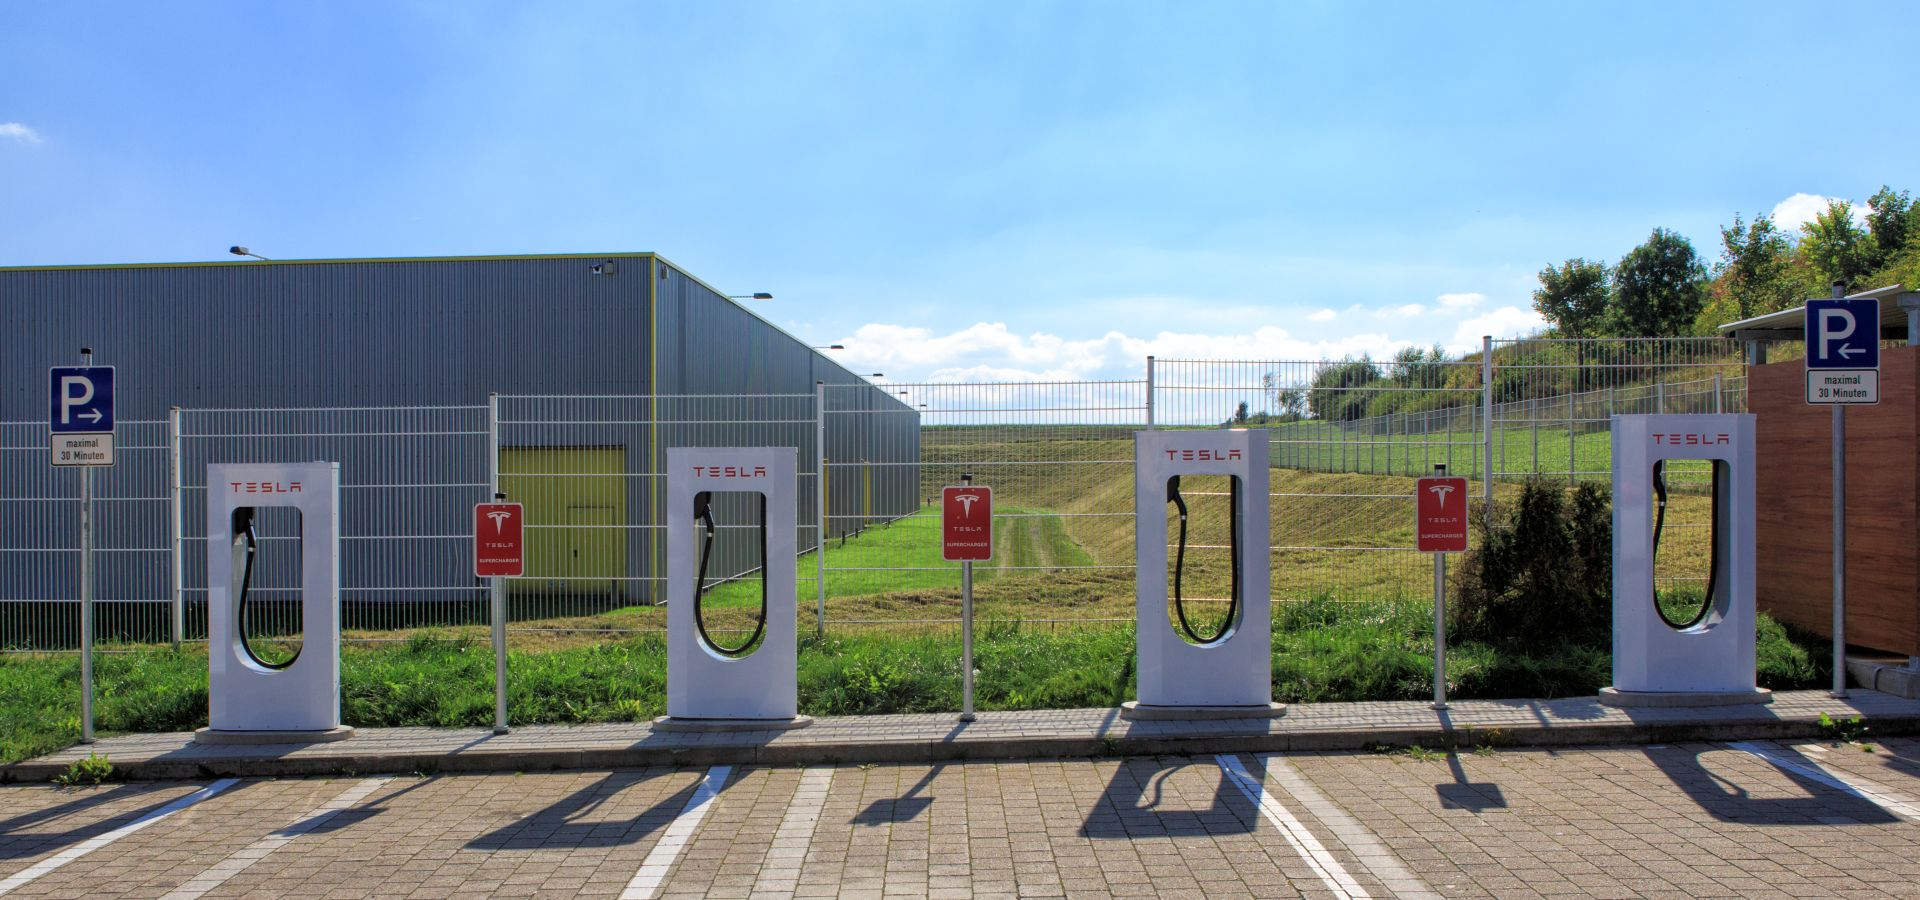 Tesla charging station in Münchberg, Germany